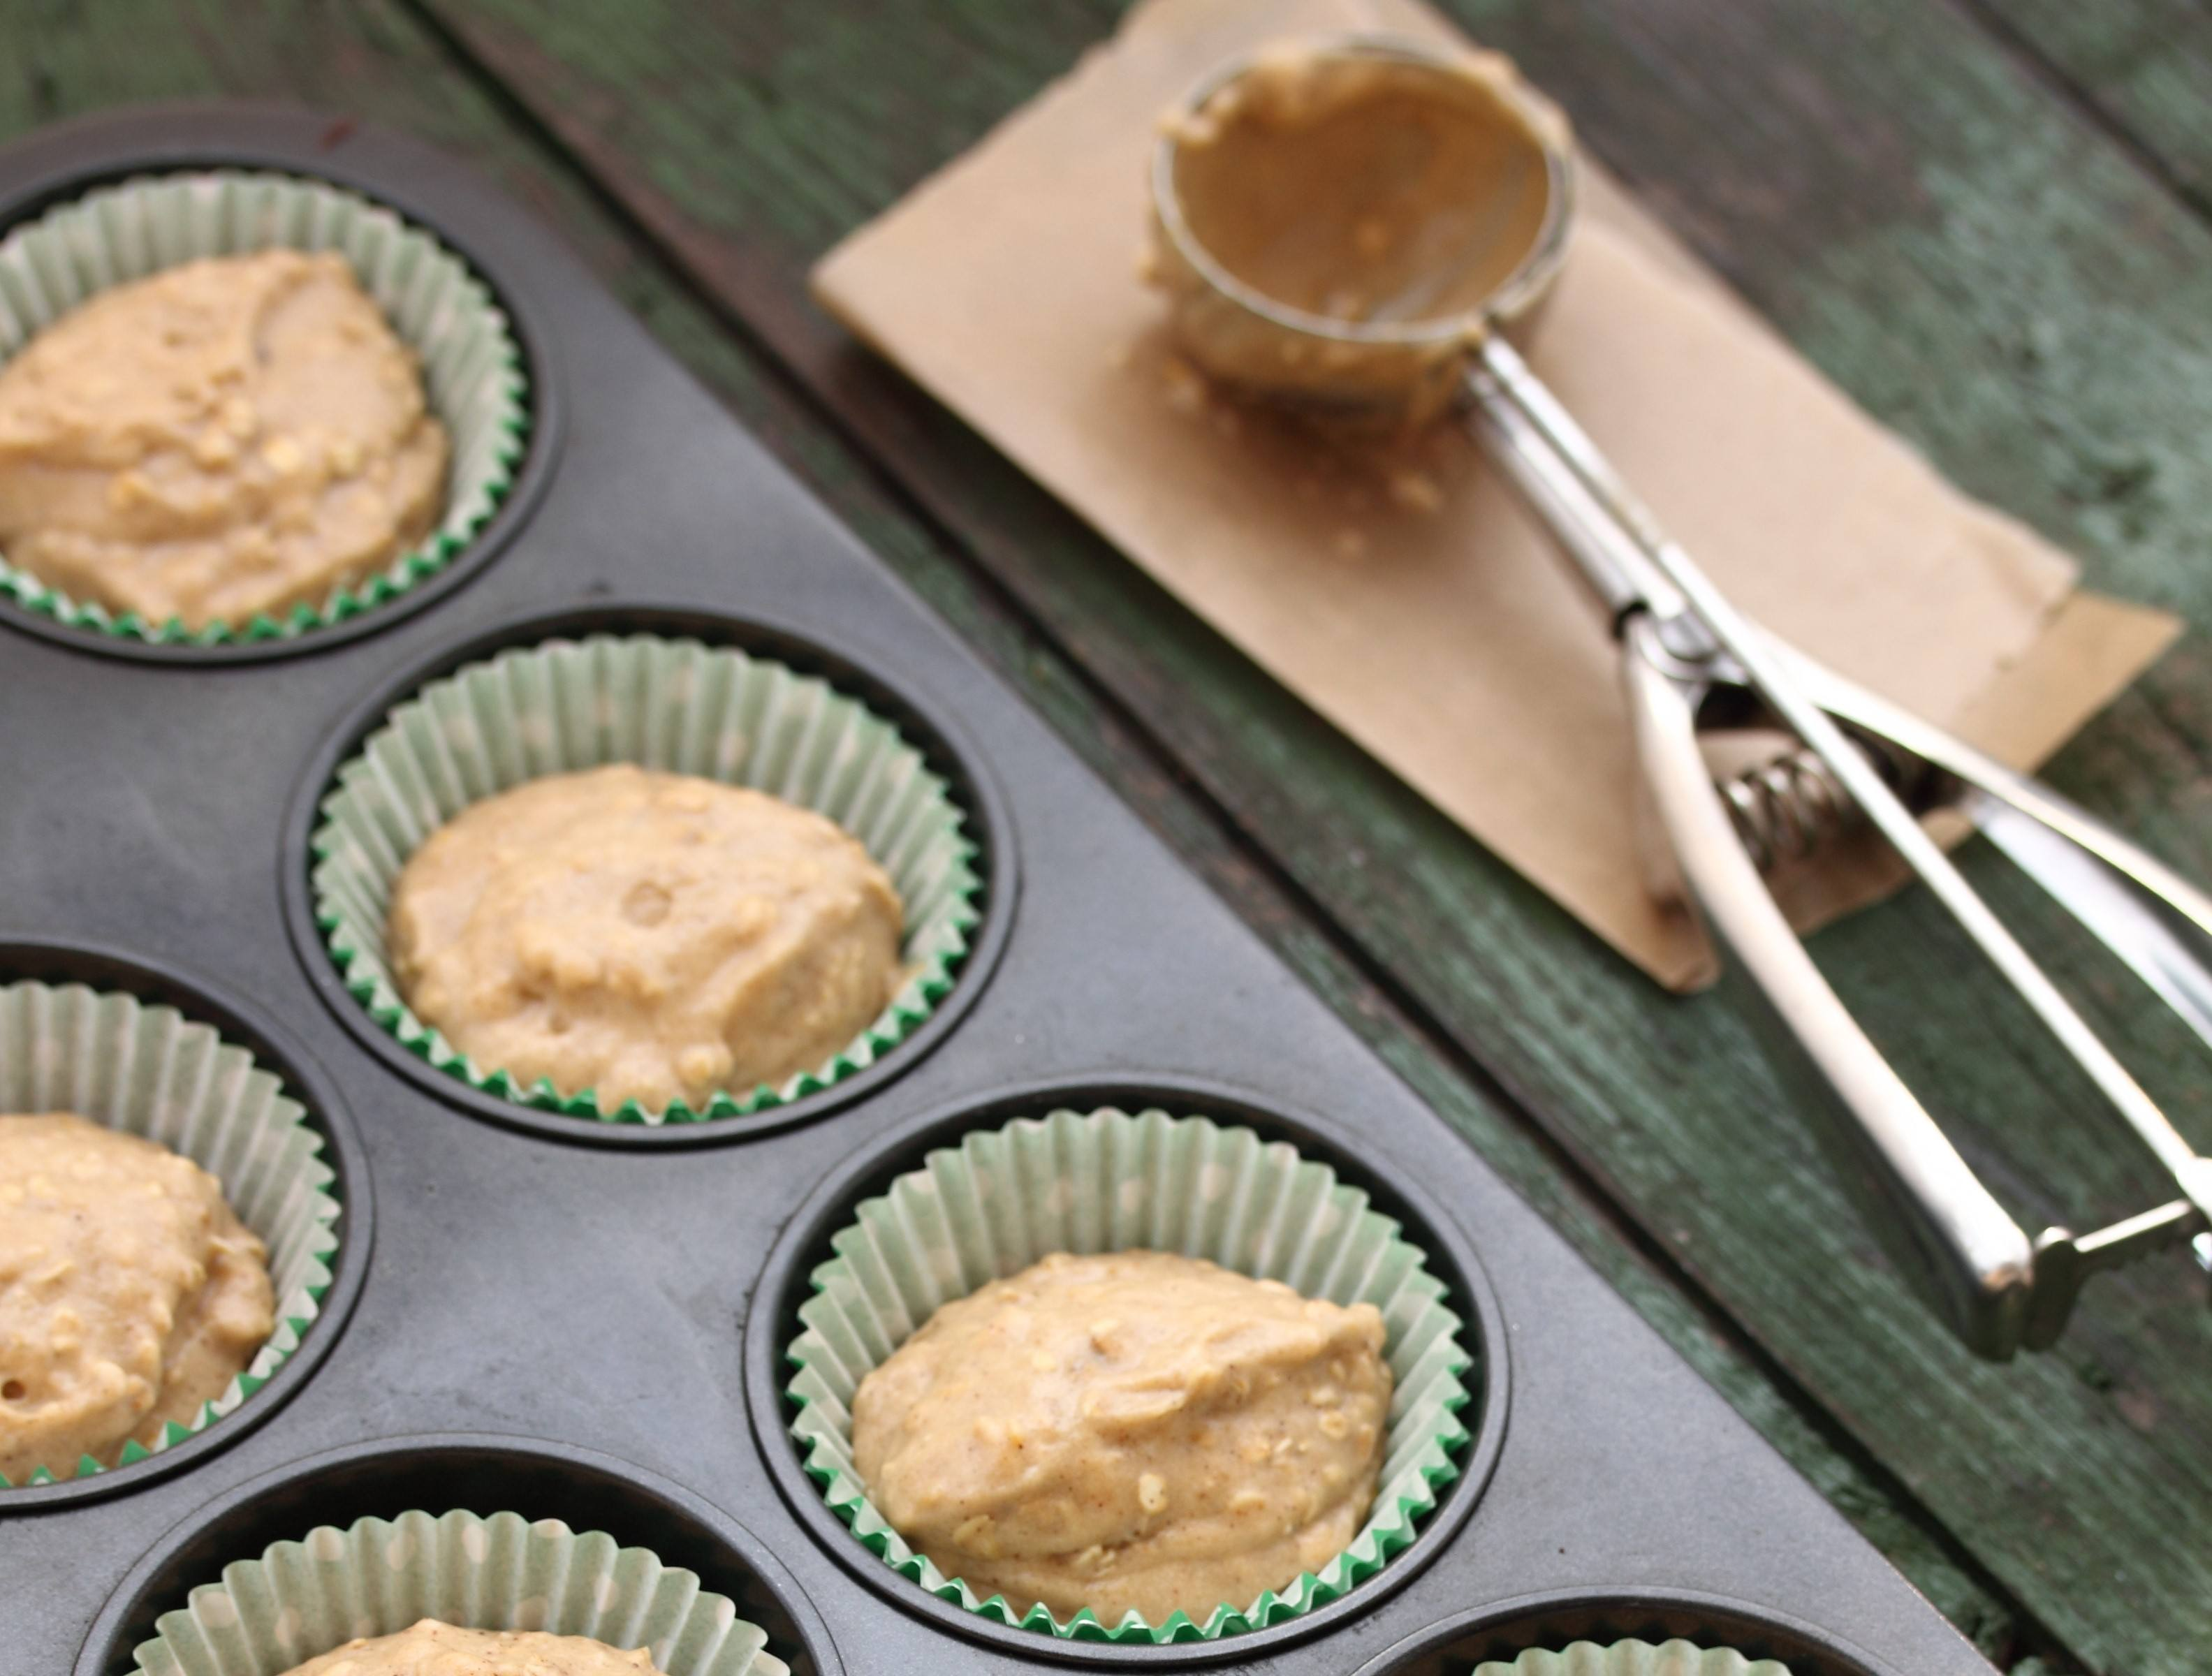 Muffin batter with an ice cream scoop